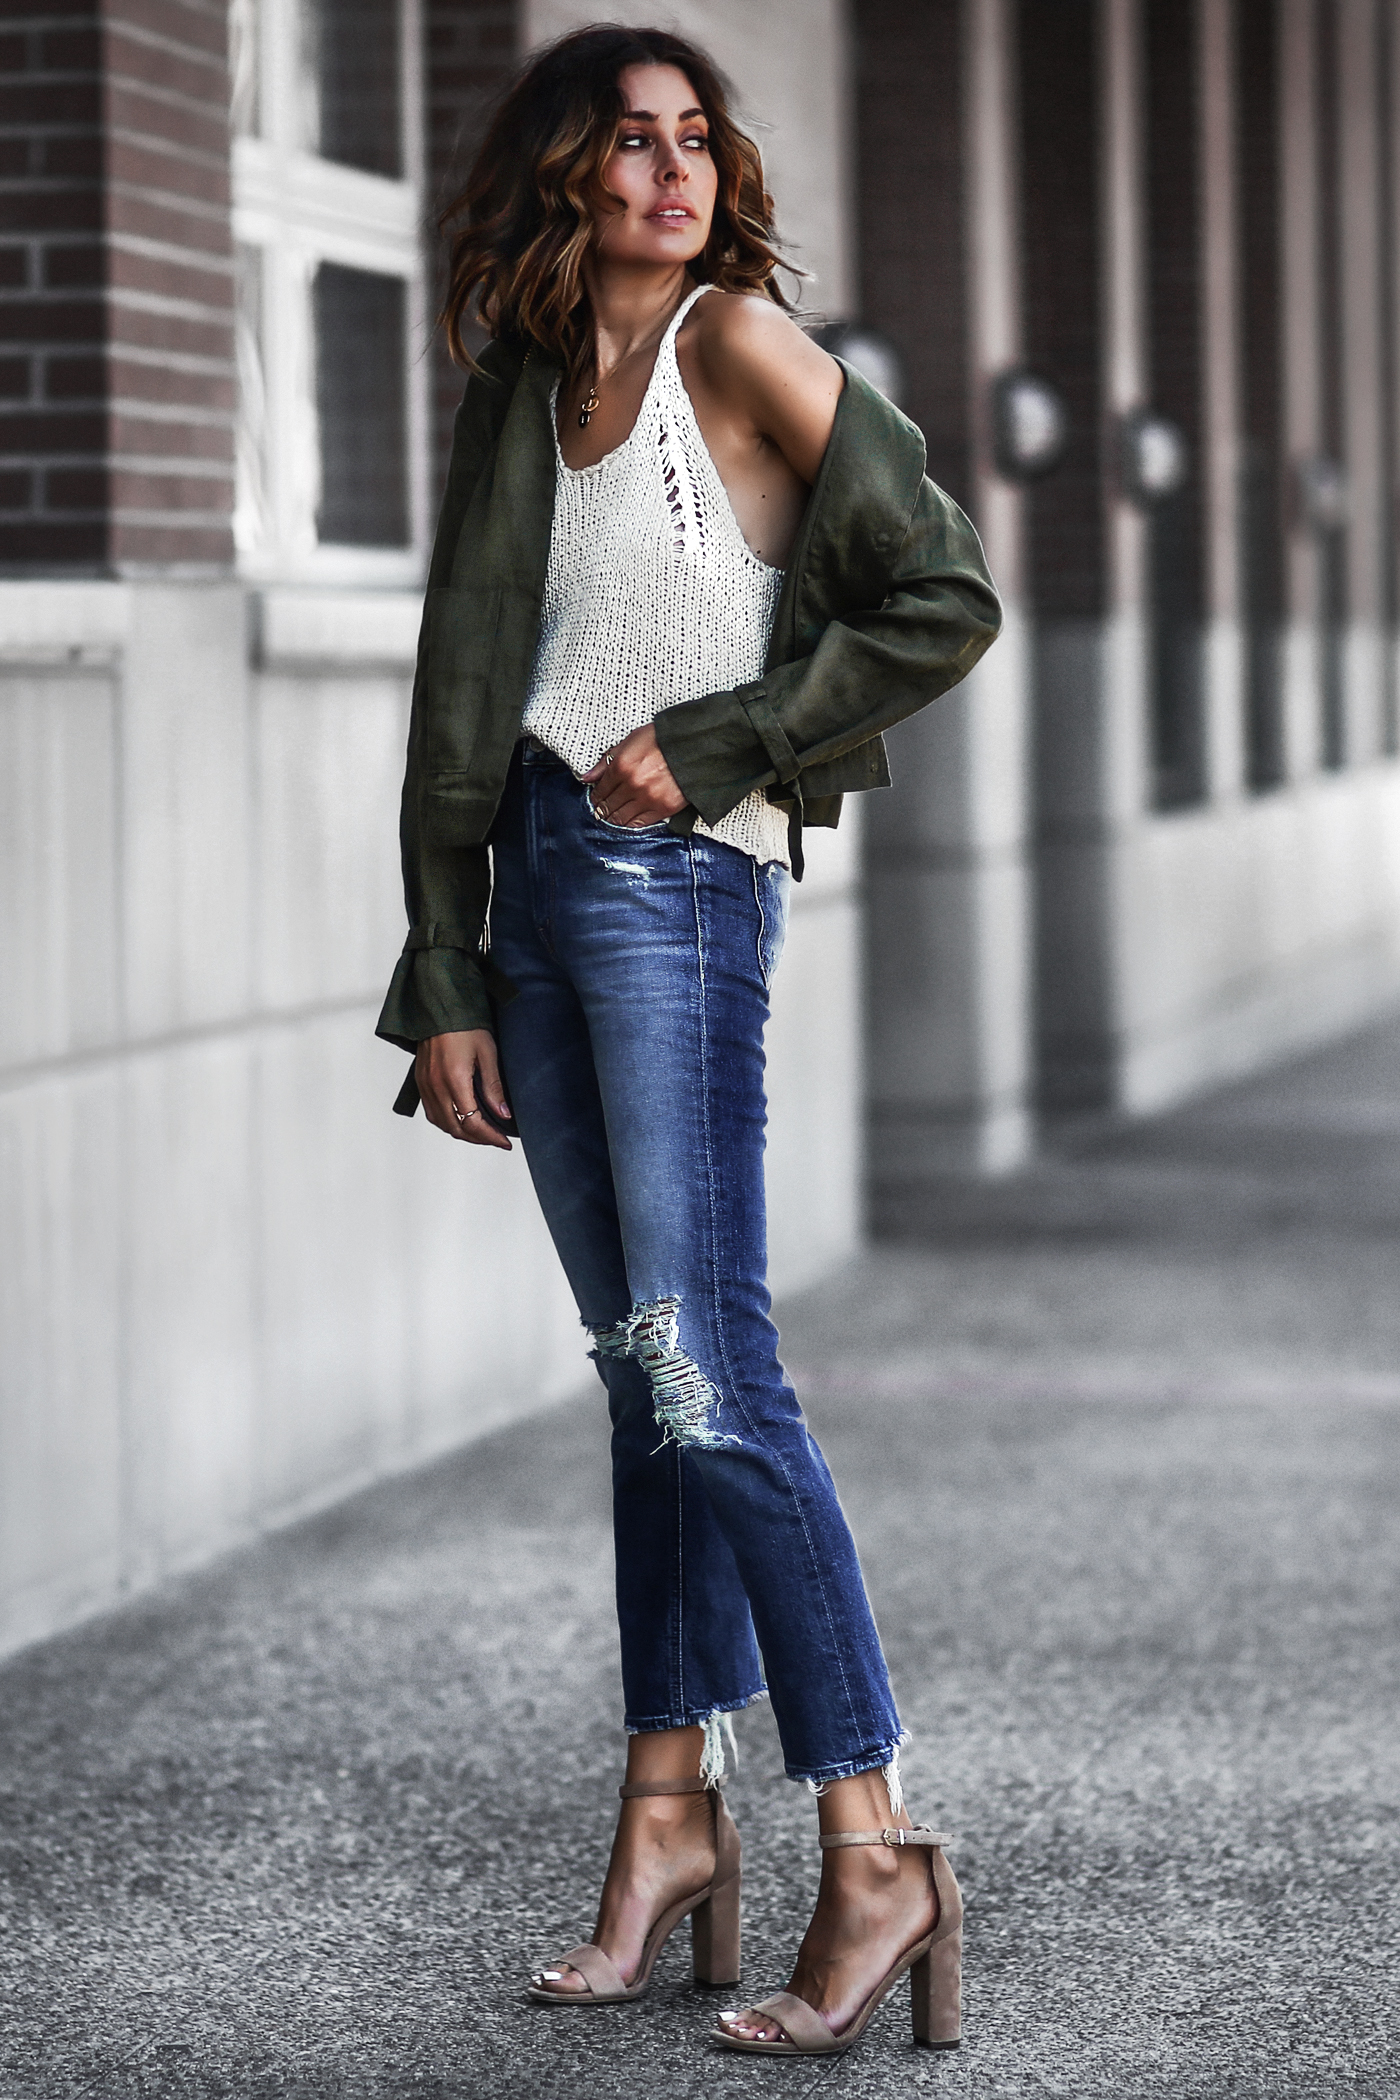 white knit tank top, army green jacket, distressed jeans, nude suede sandals